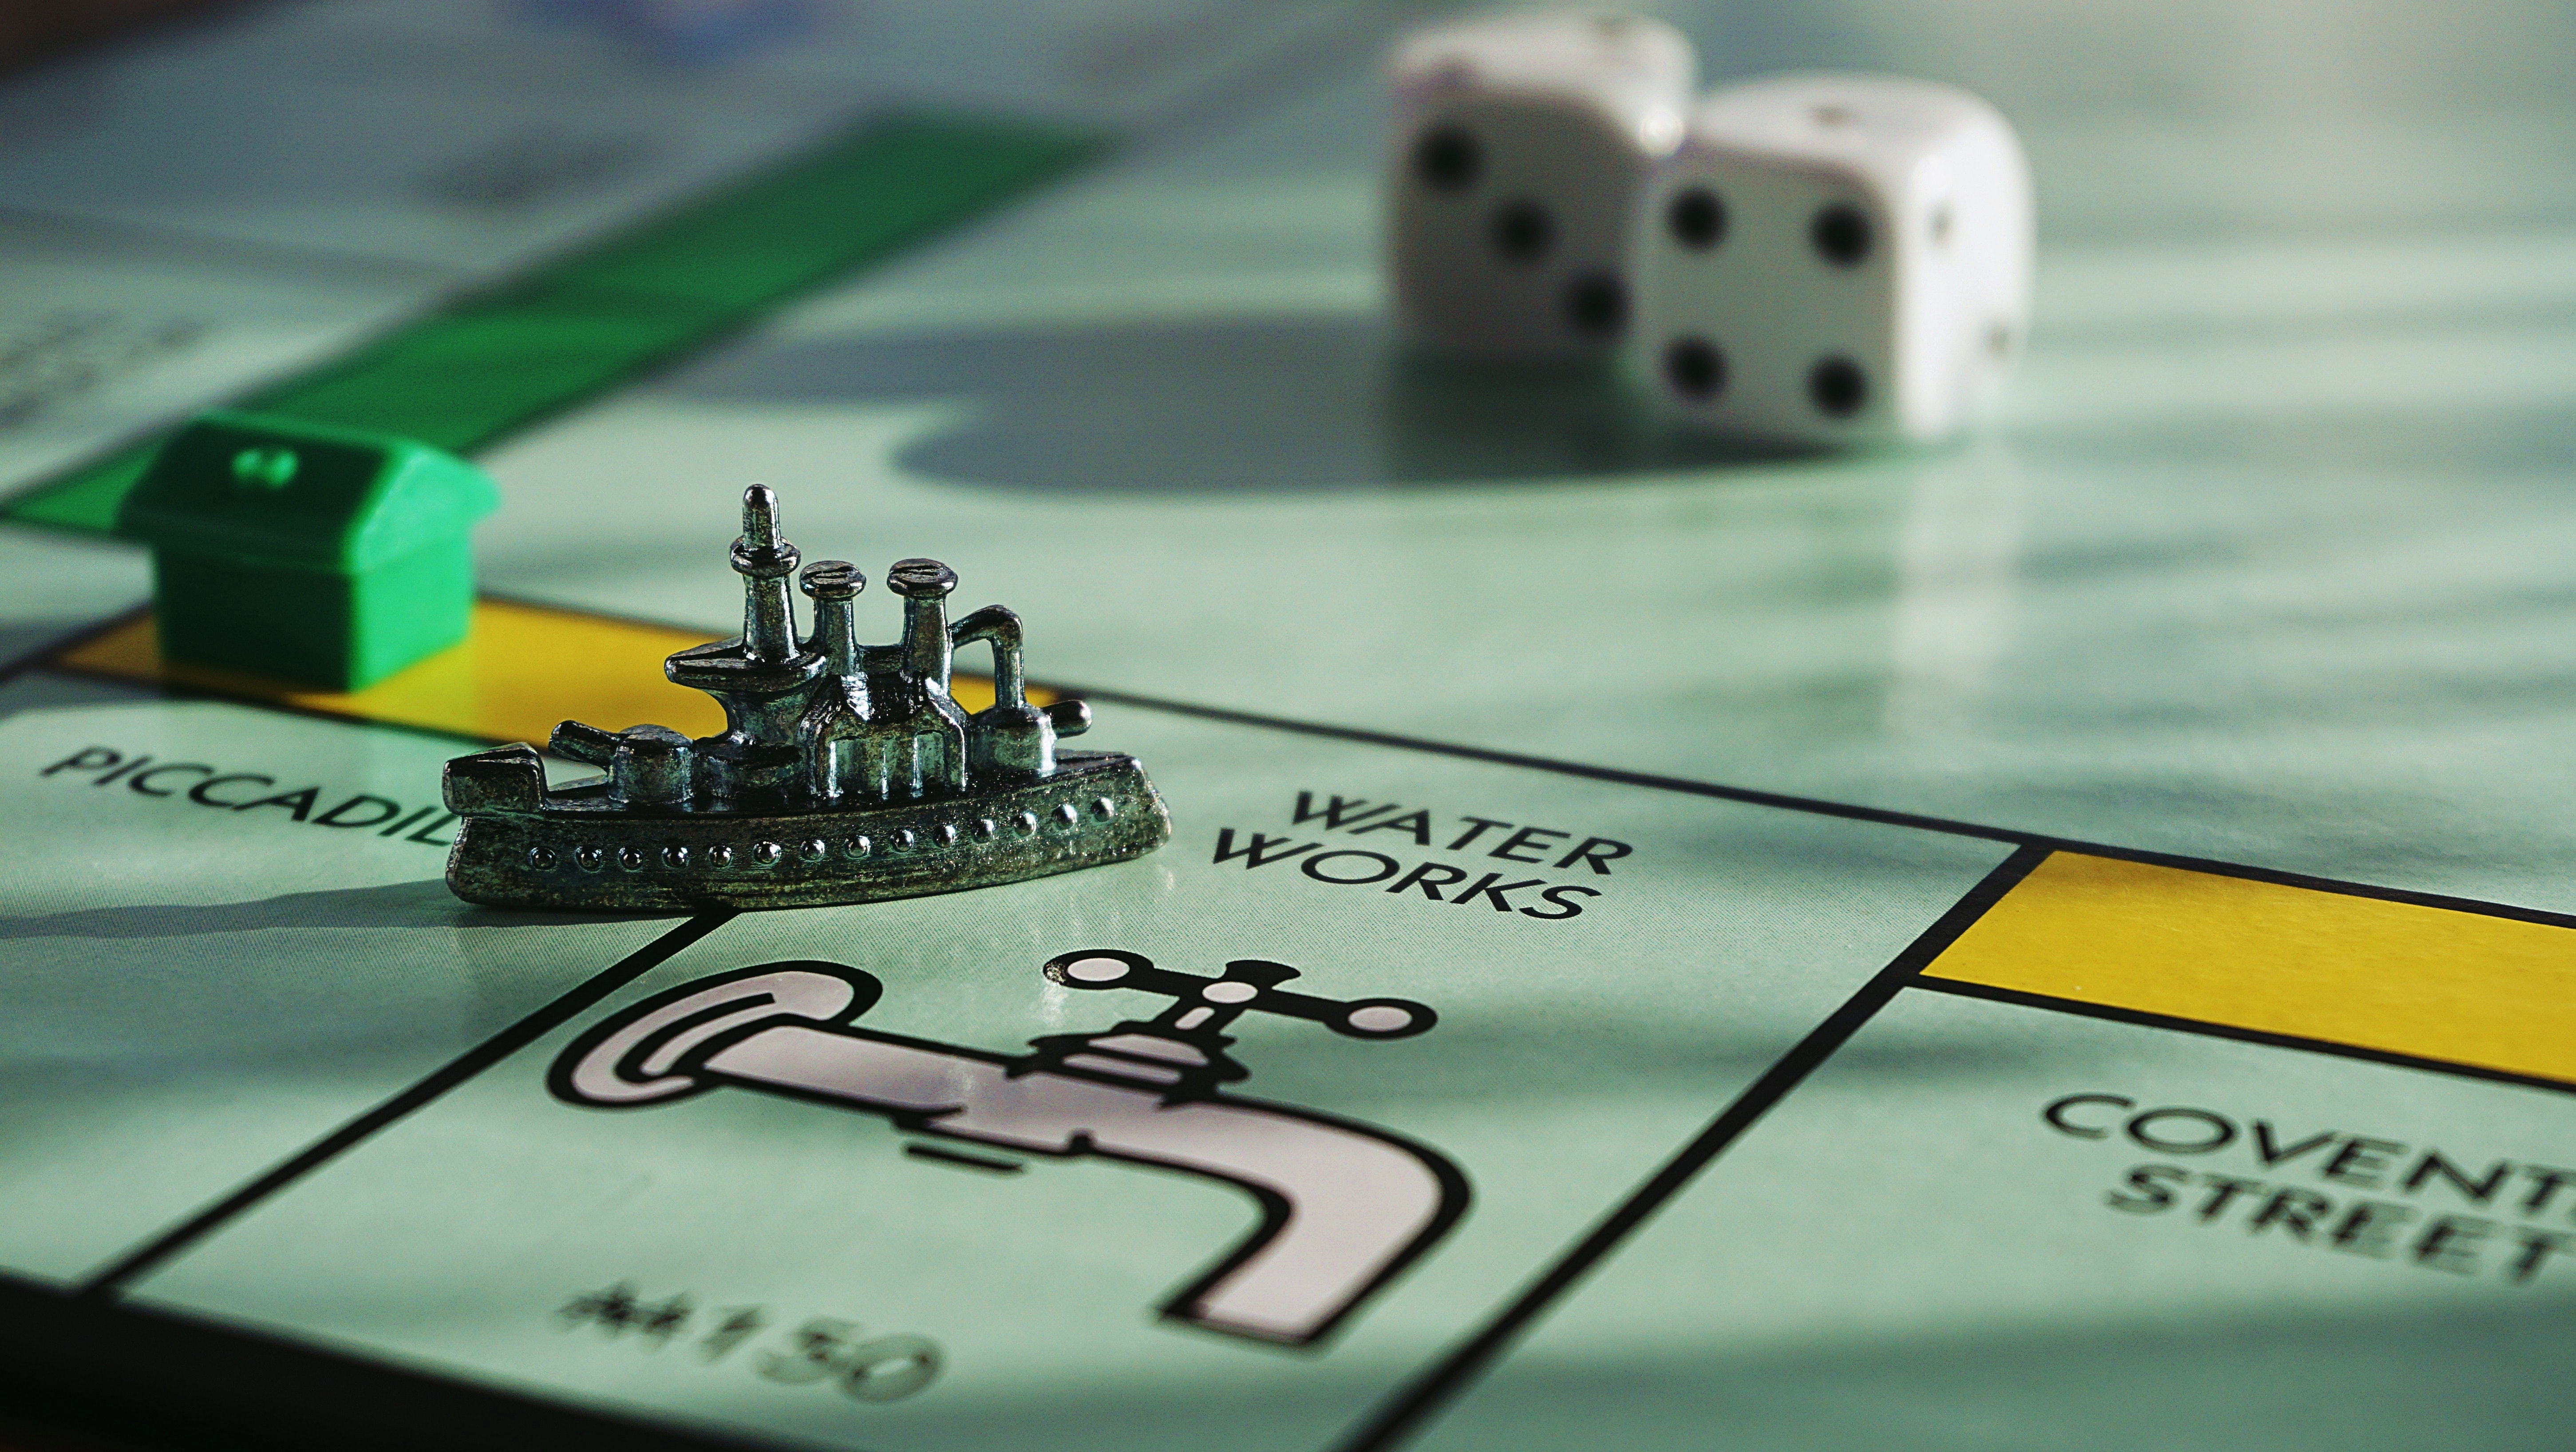 Project management takes being organized like the game monopoly